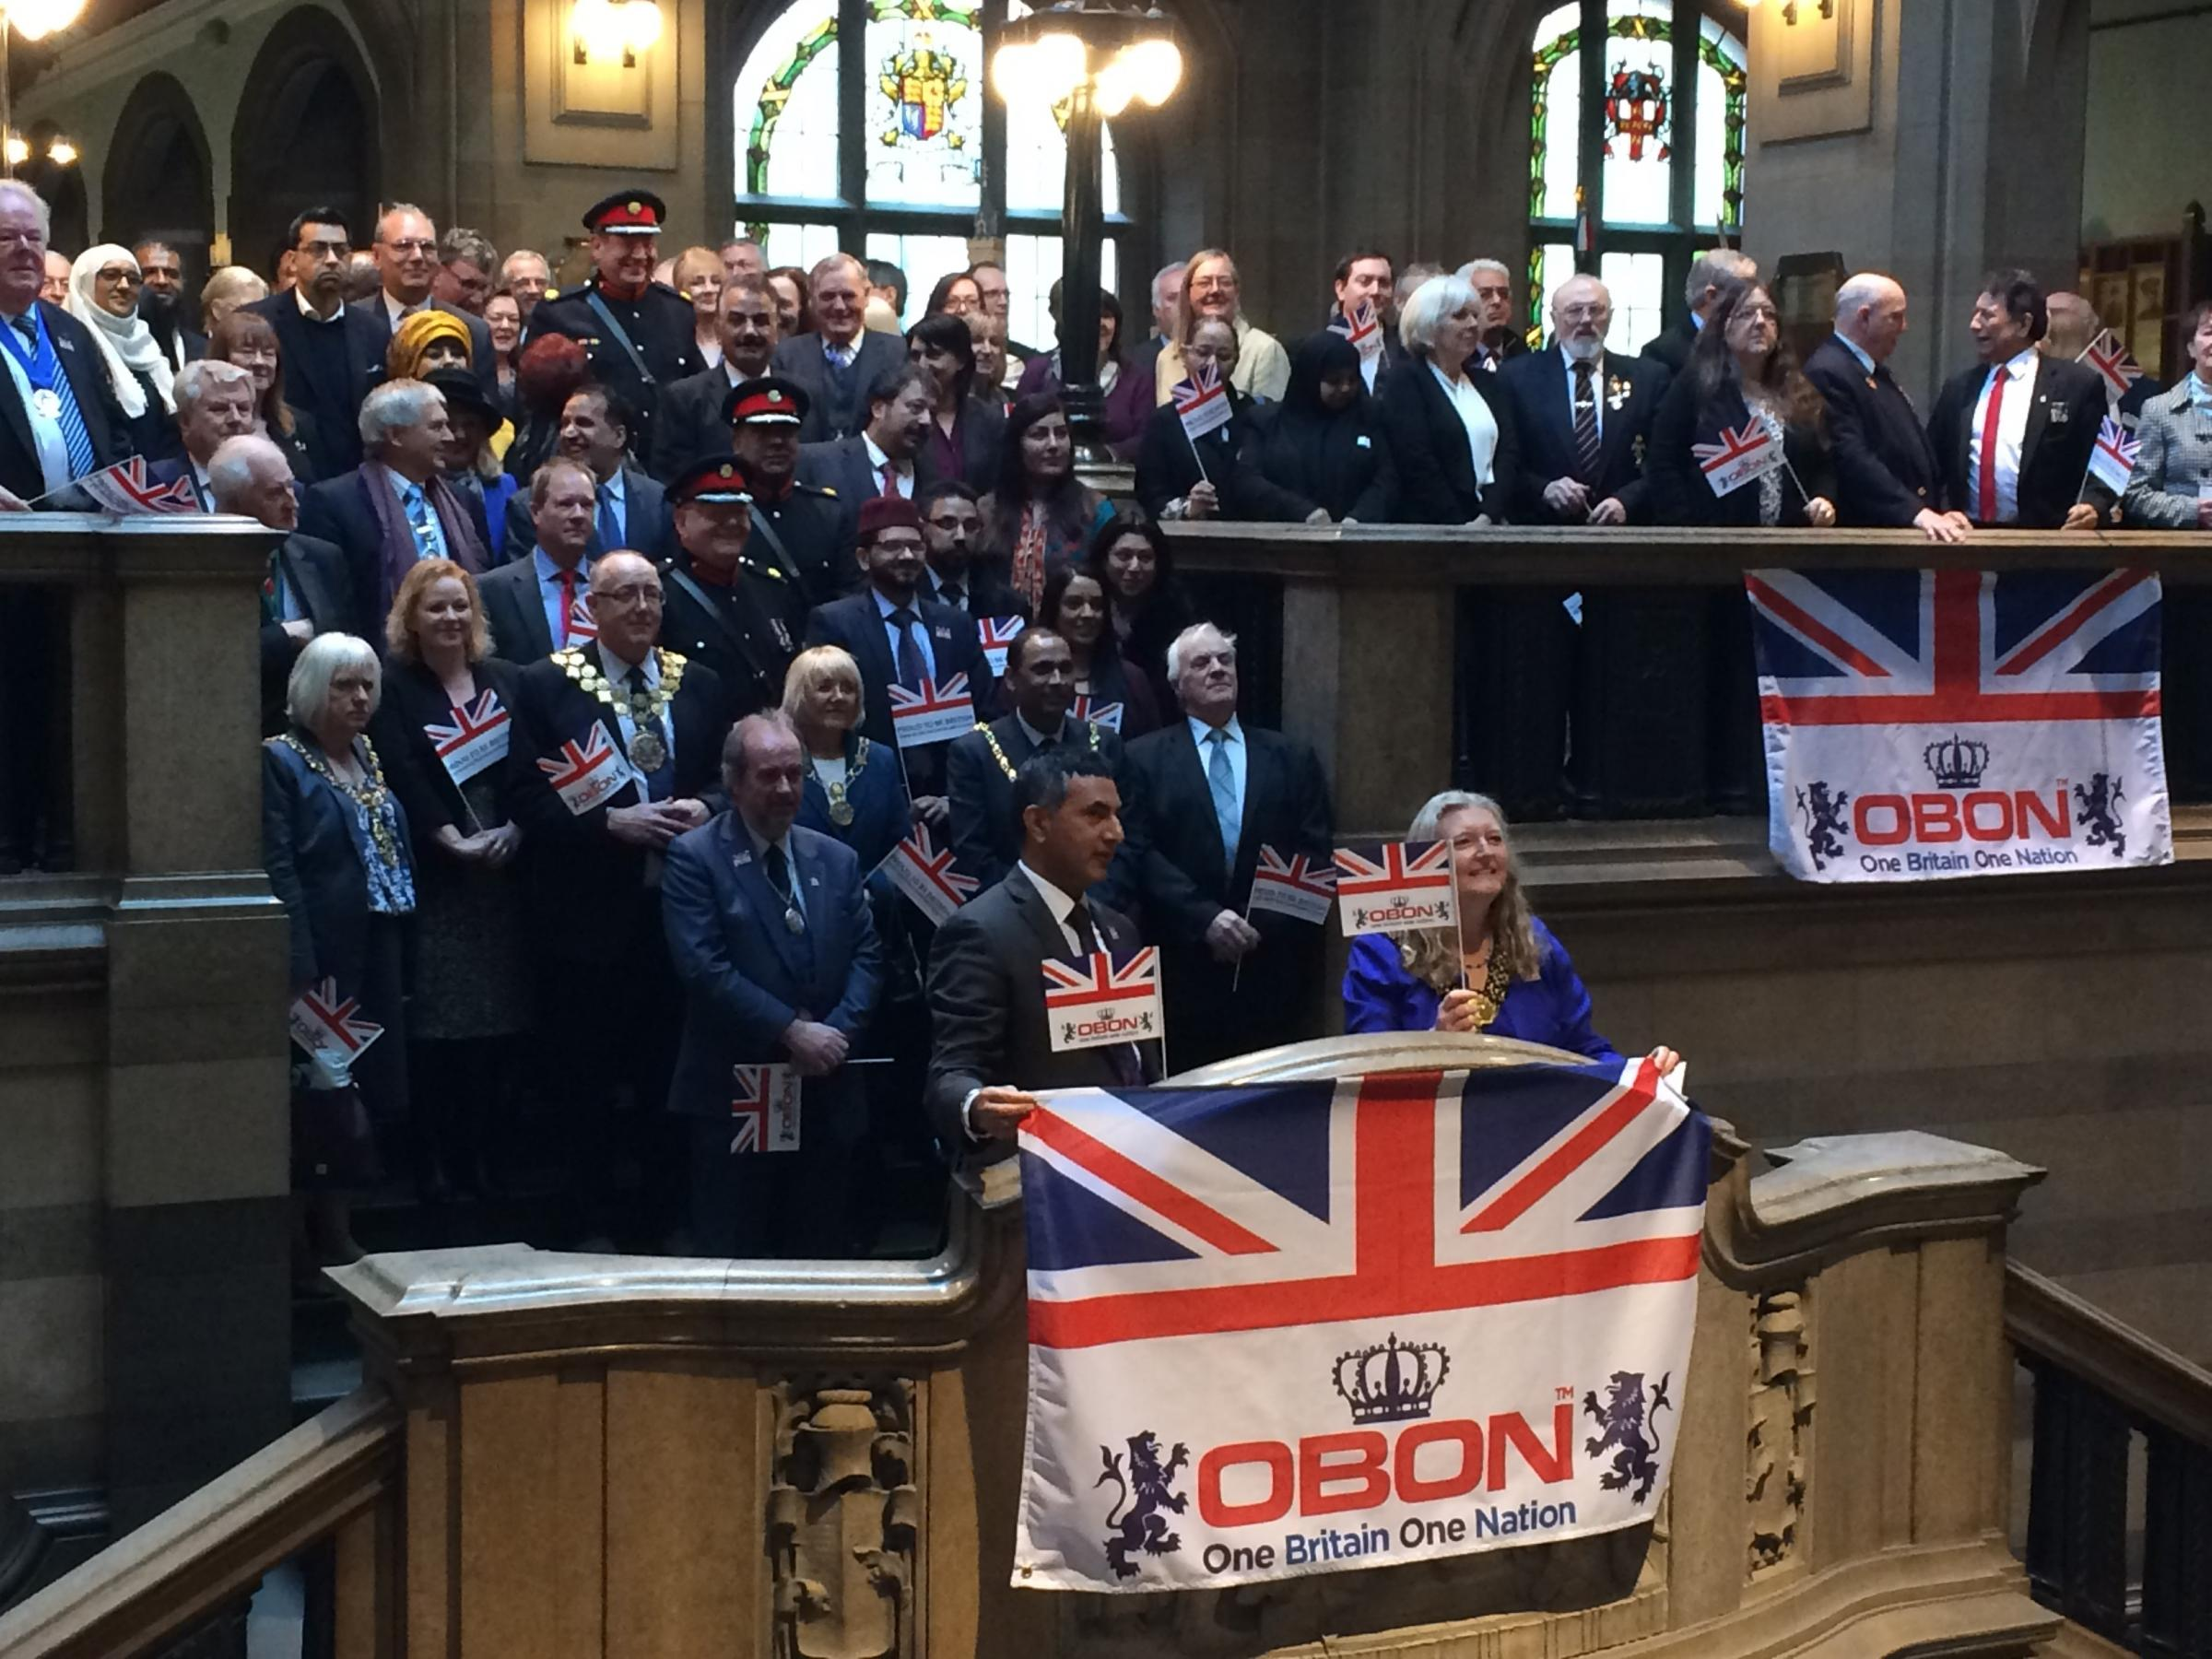 Dignitaries gathered at City Hall to kick off One Britain One Nation's campaign to celebrate the Queen's 90th birthday